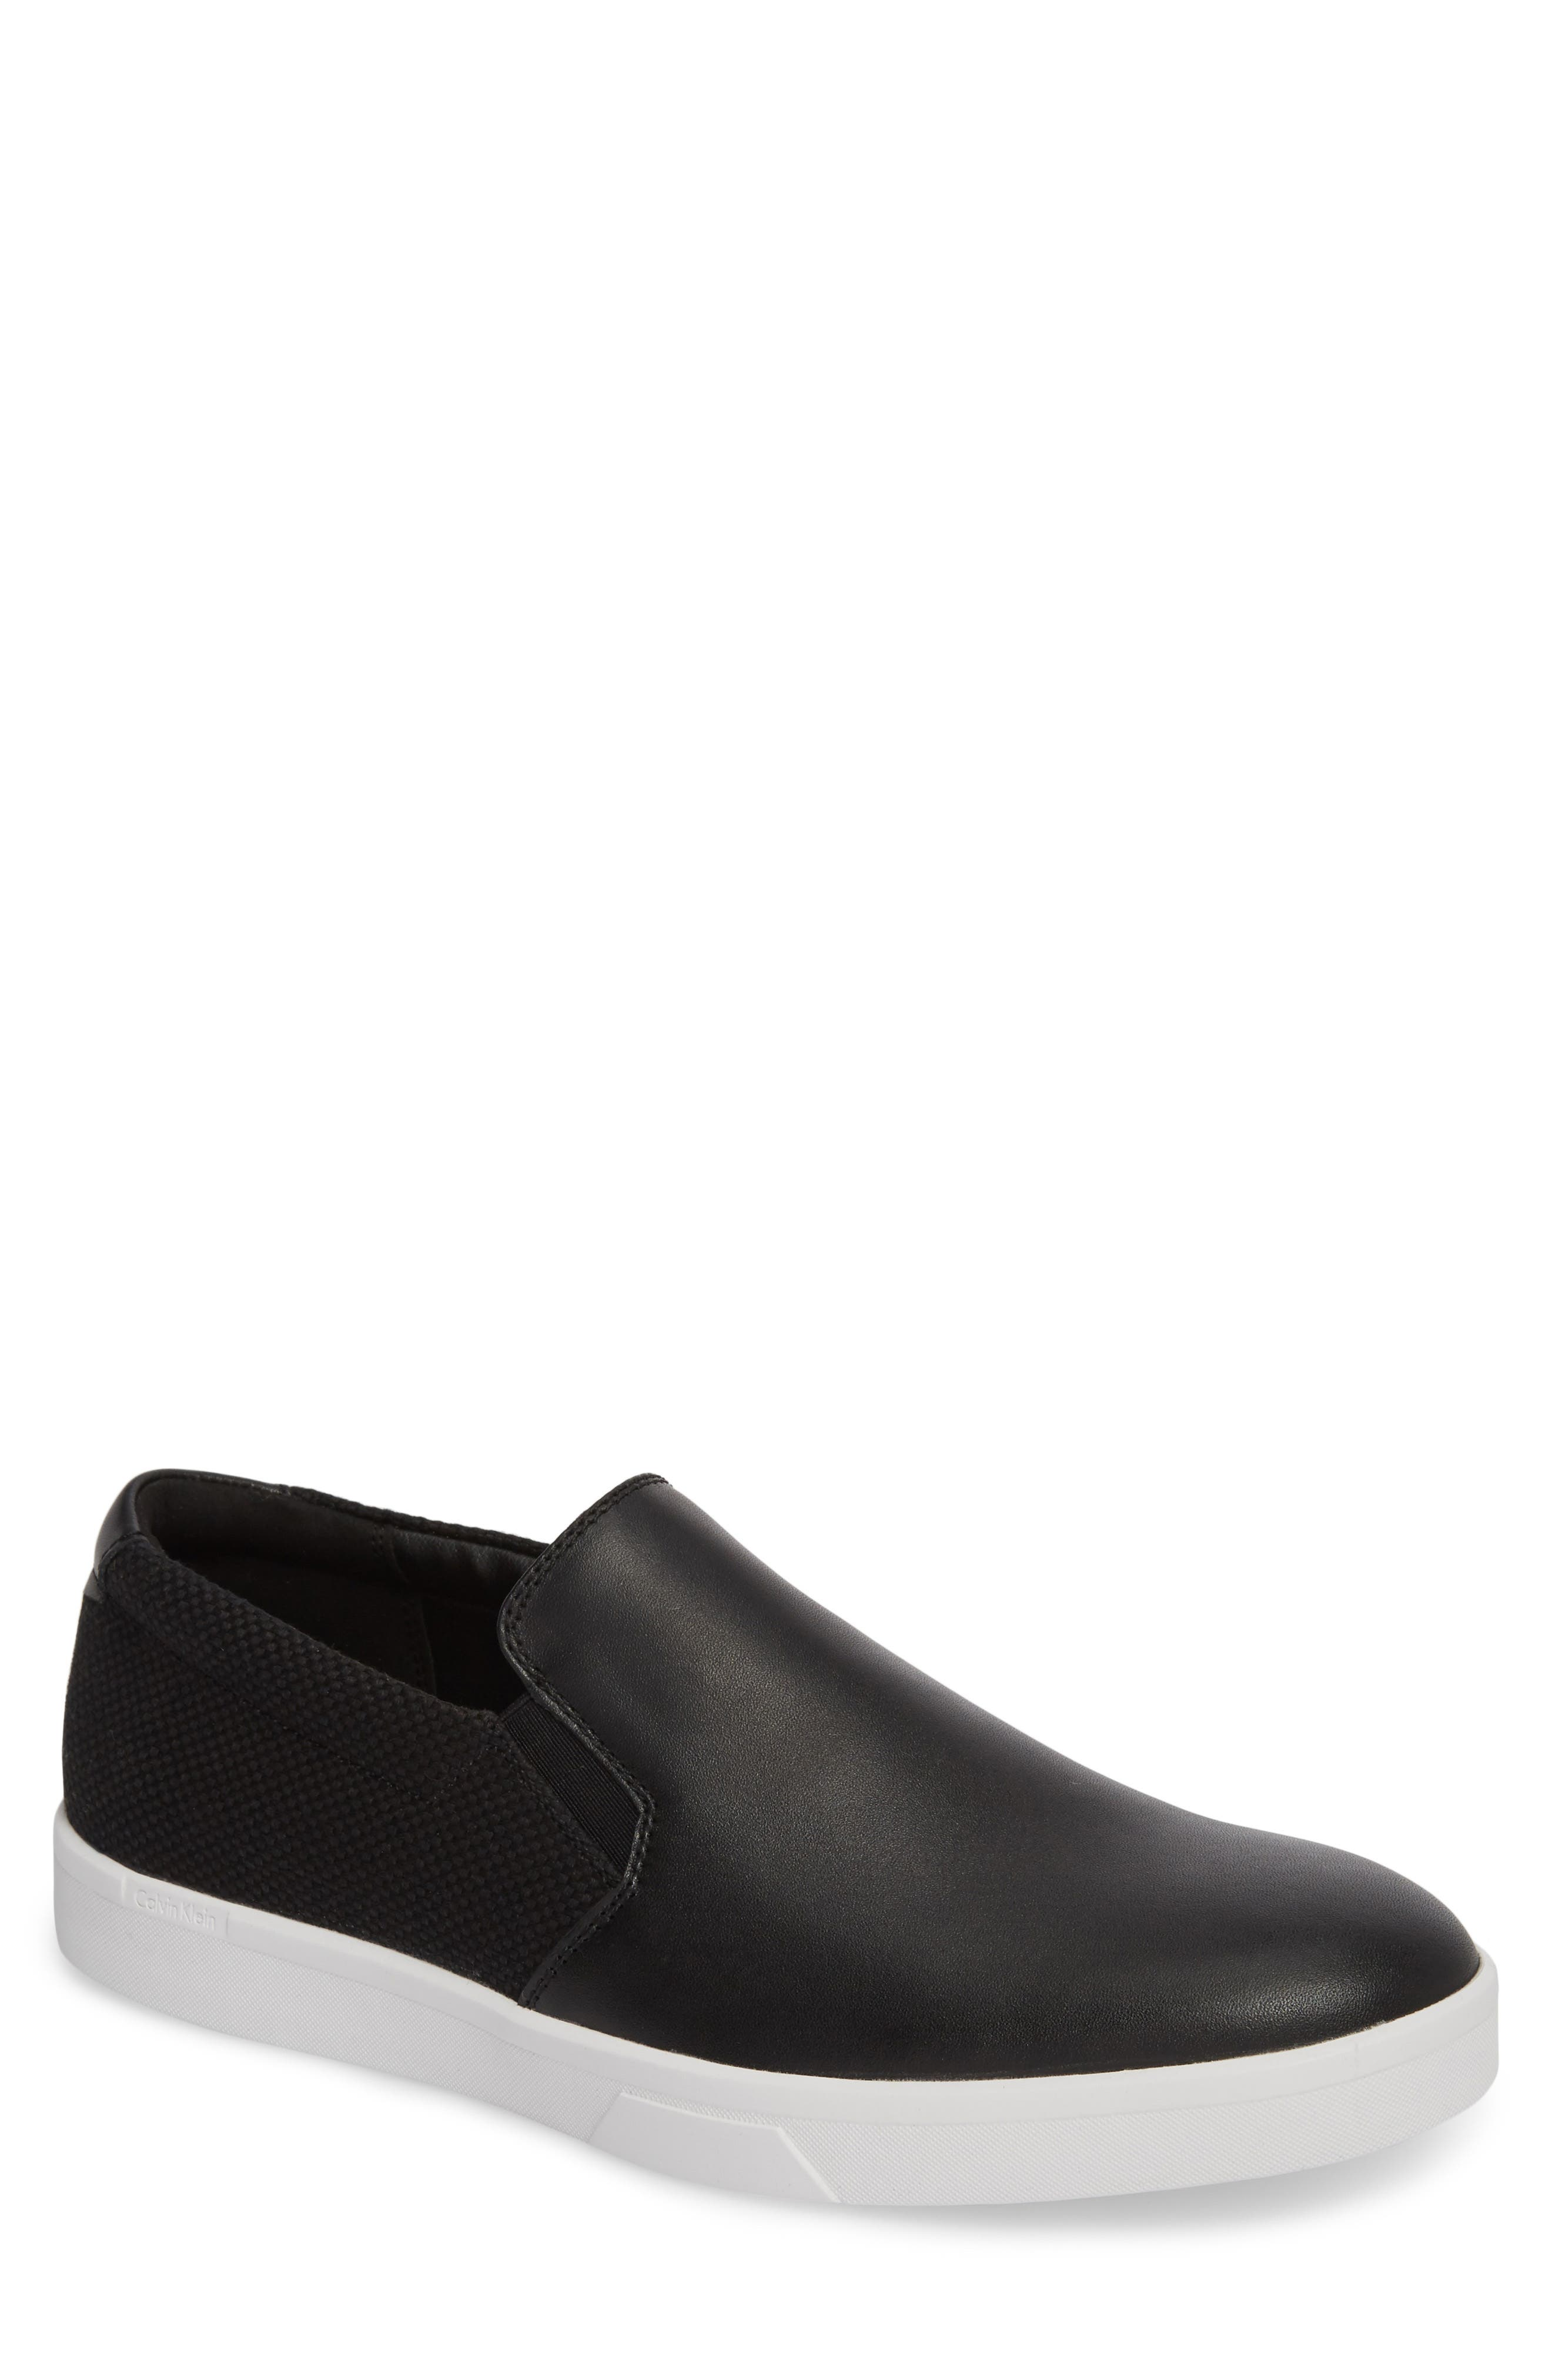 'Ivo' Slip-On,                         Main,                         color, 003